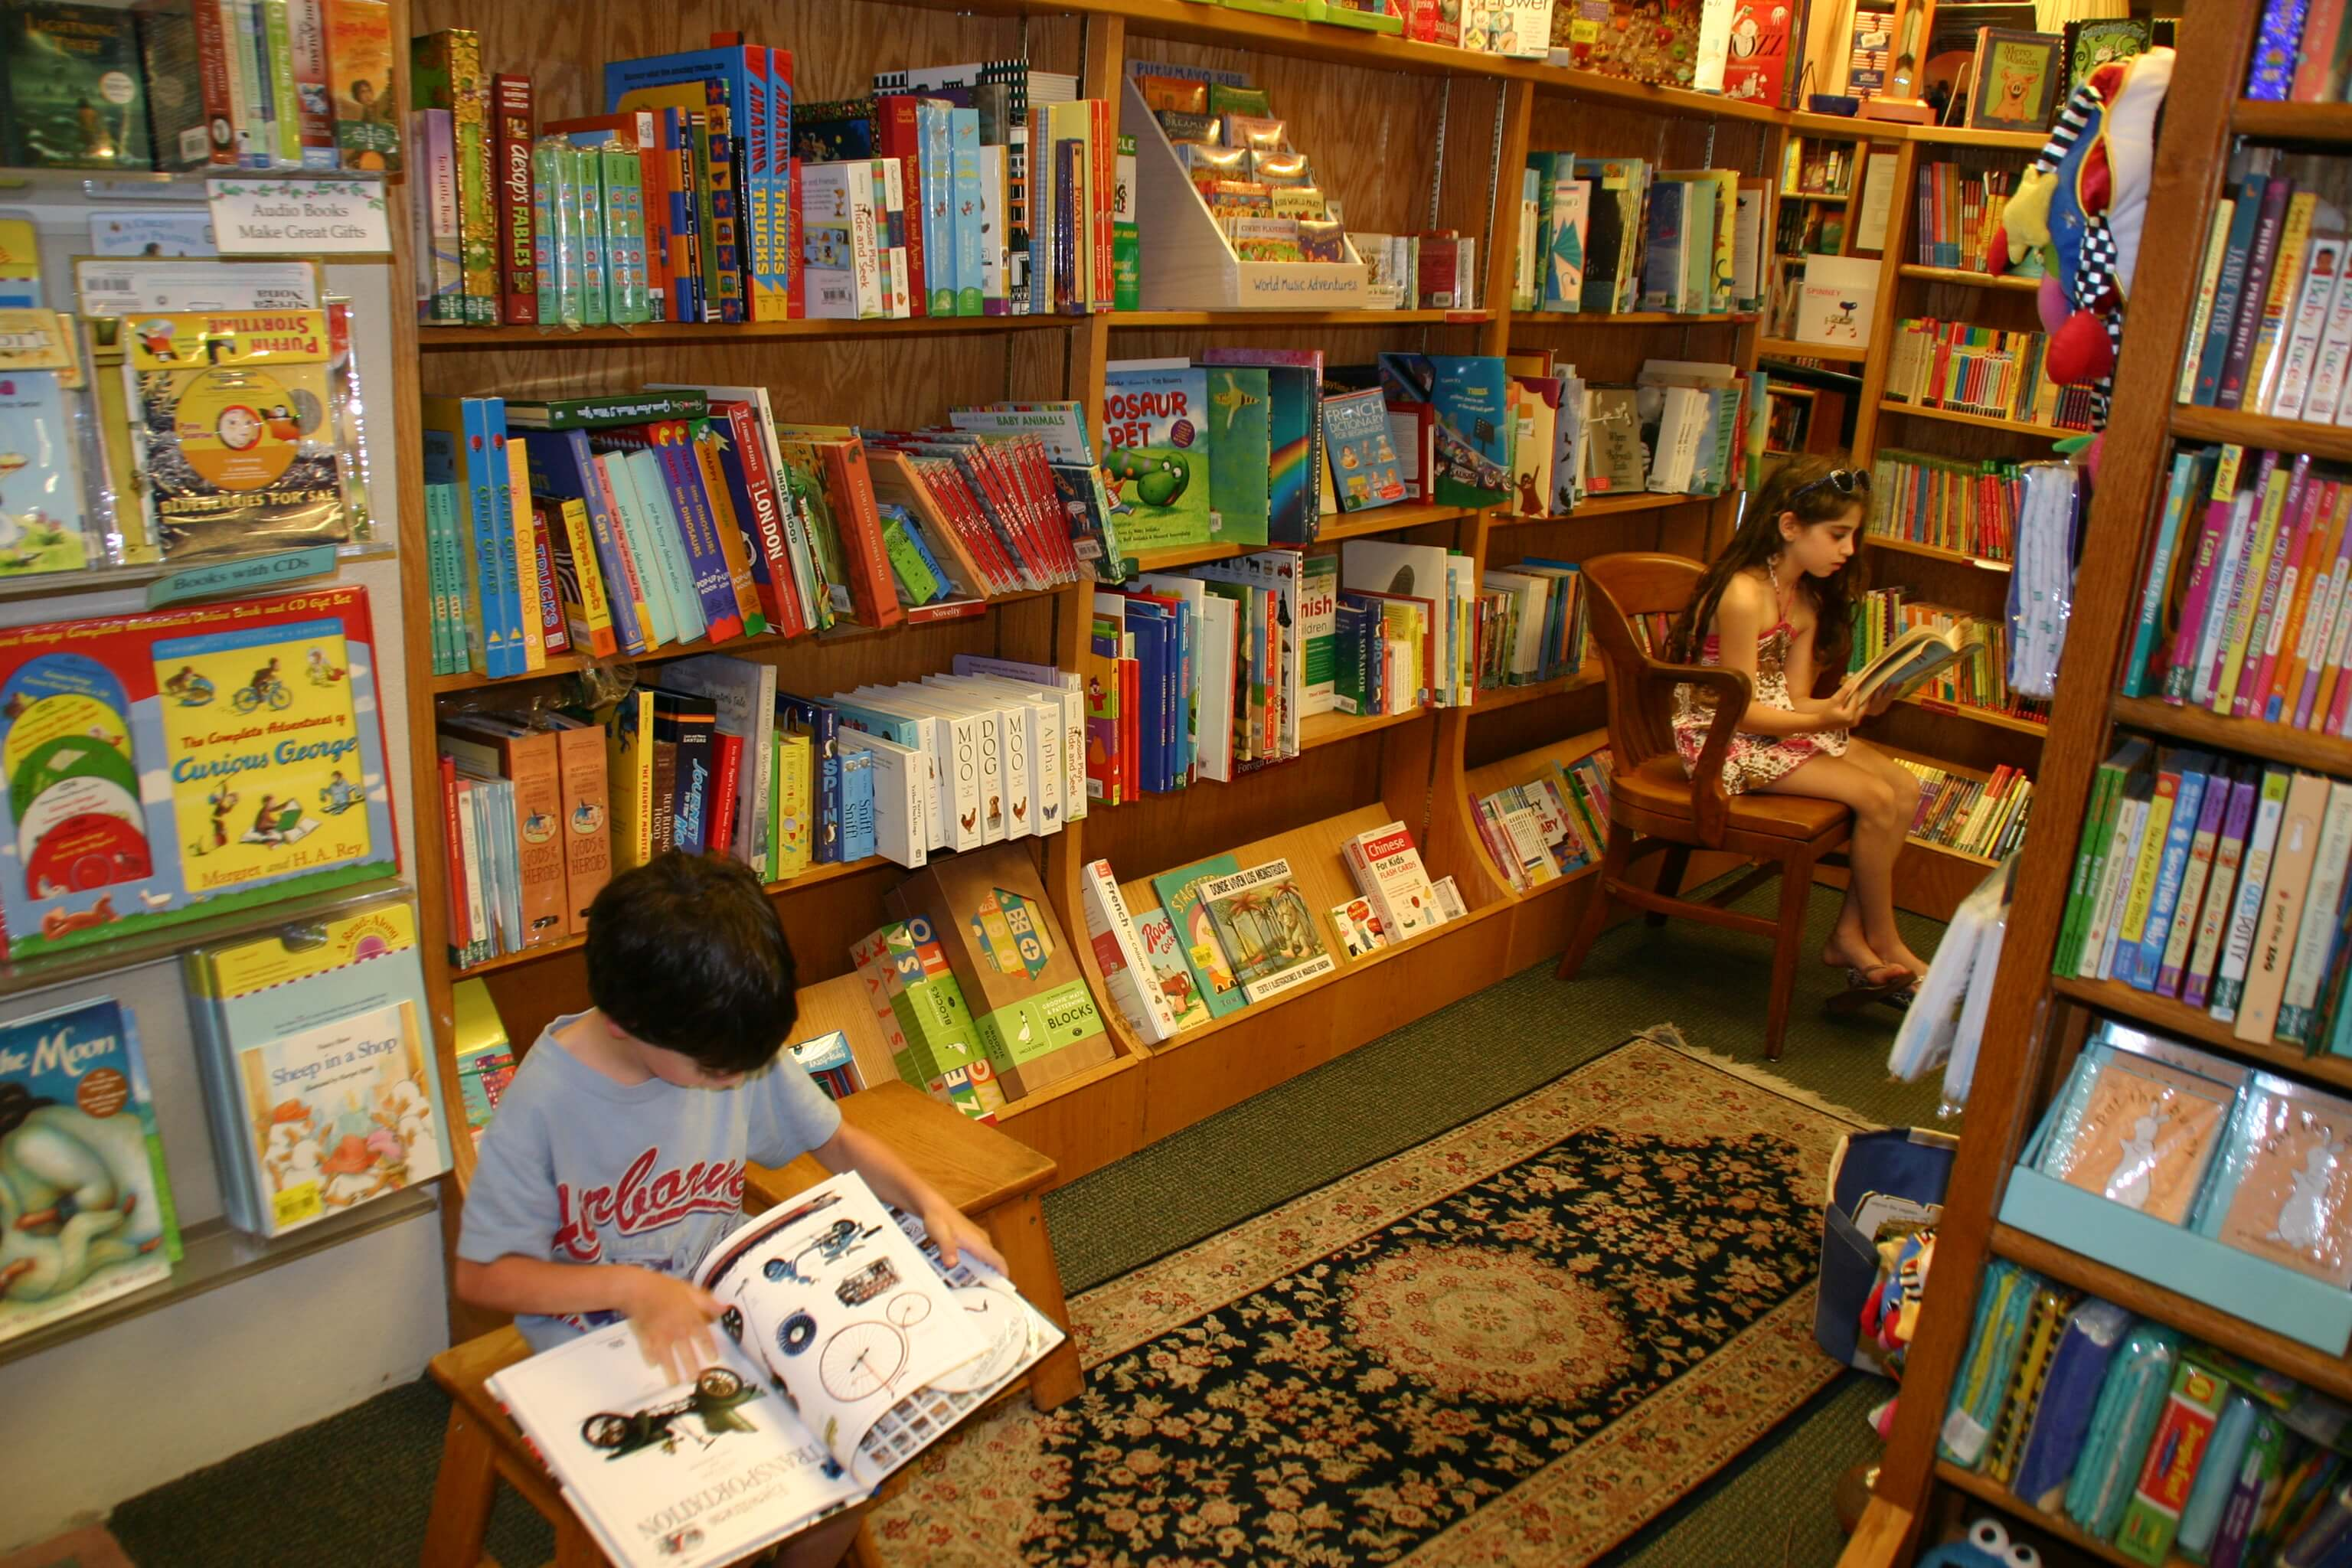 Take Your Child To A Bookstore Day This Saturday